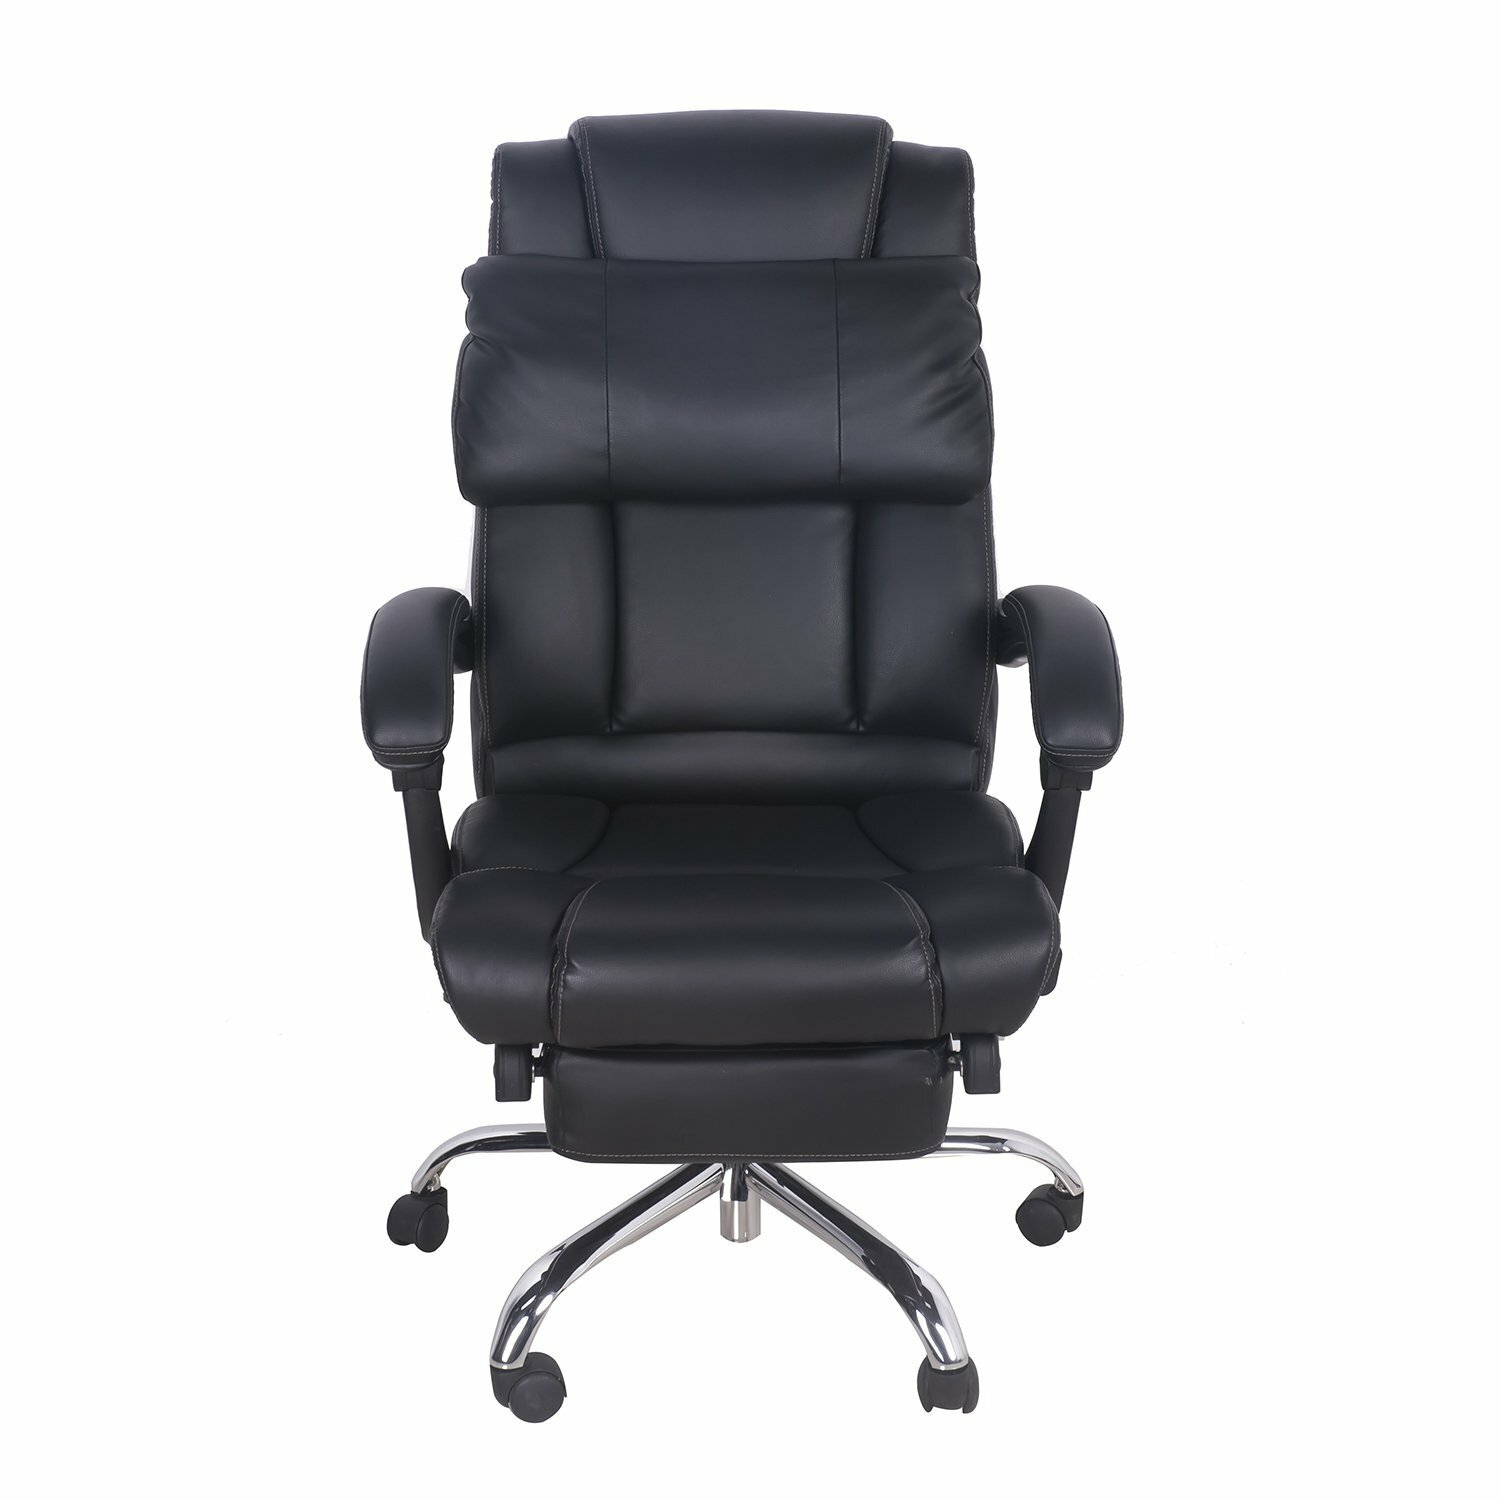 Executive Chair - Merax Executive Chair & Reviews Wayfair